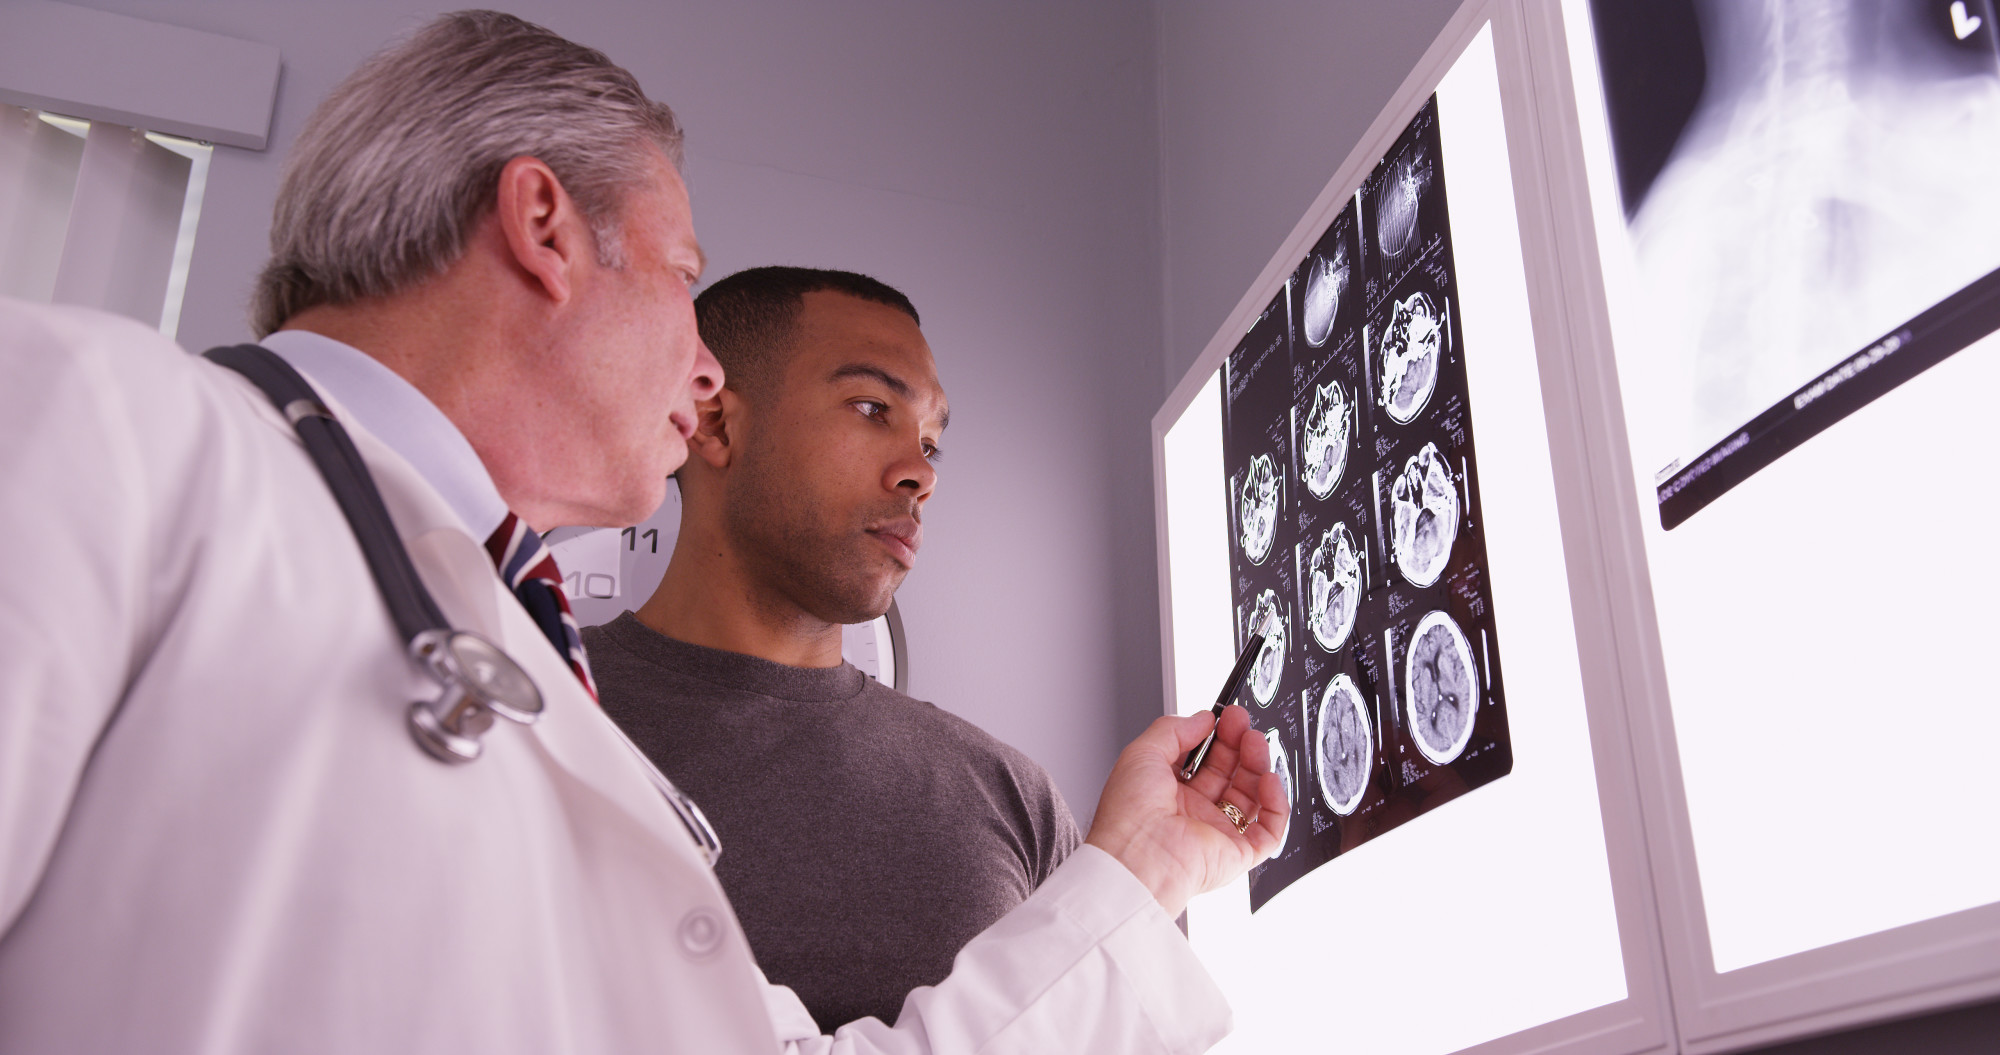 It's important to keep your brain healthy, but problems do arise. Here are the different types of brain injuries you need to be familiar with.